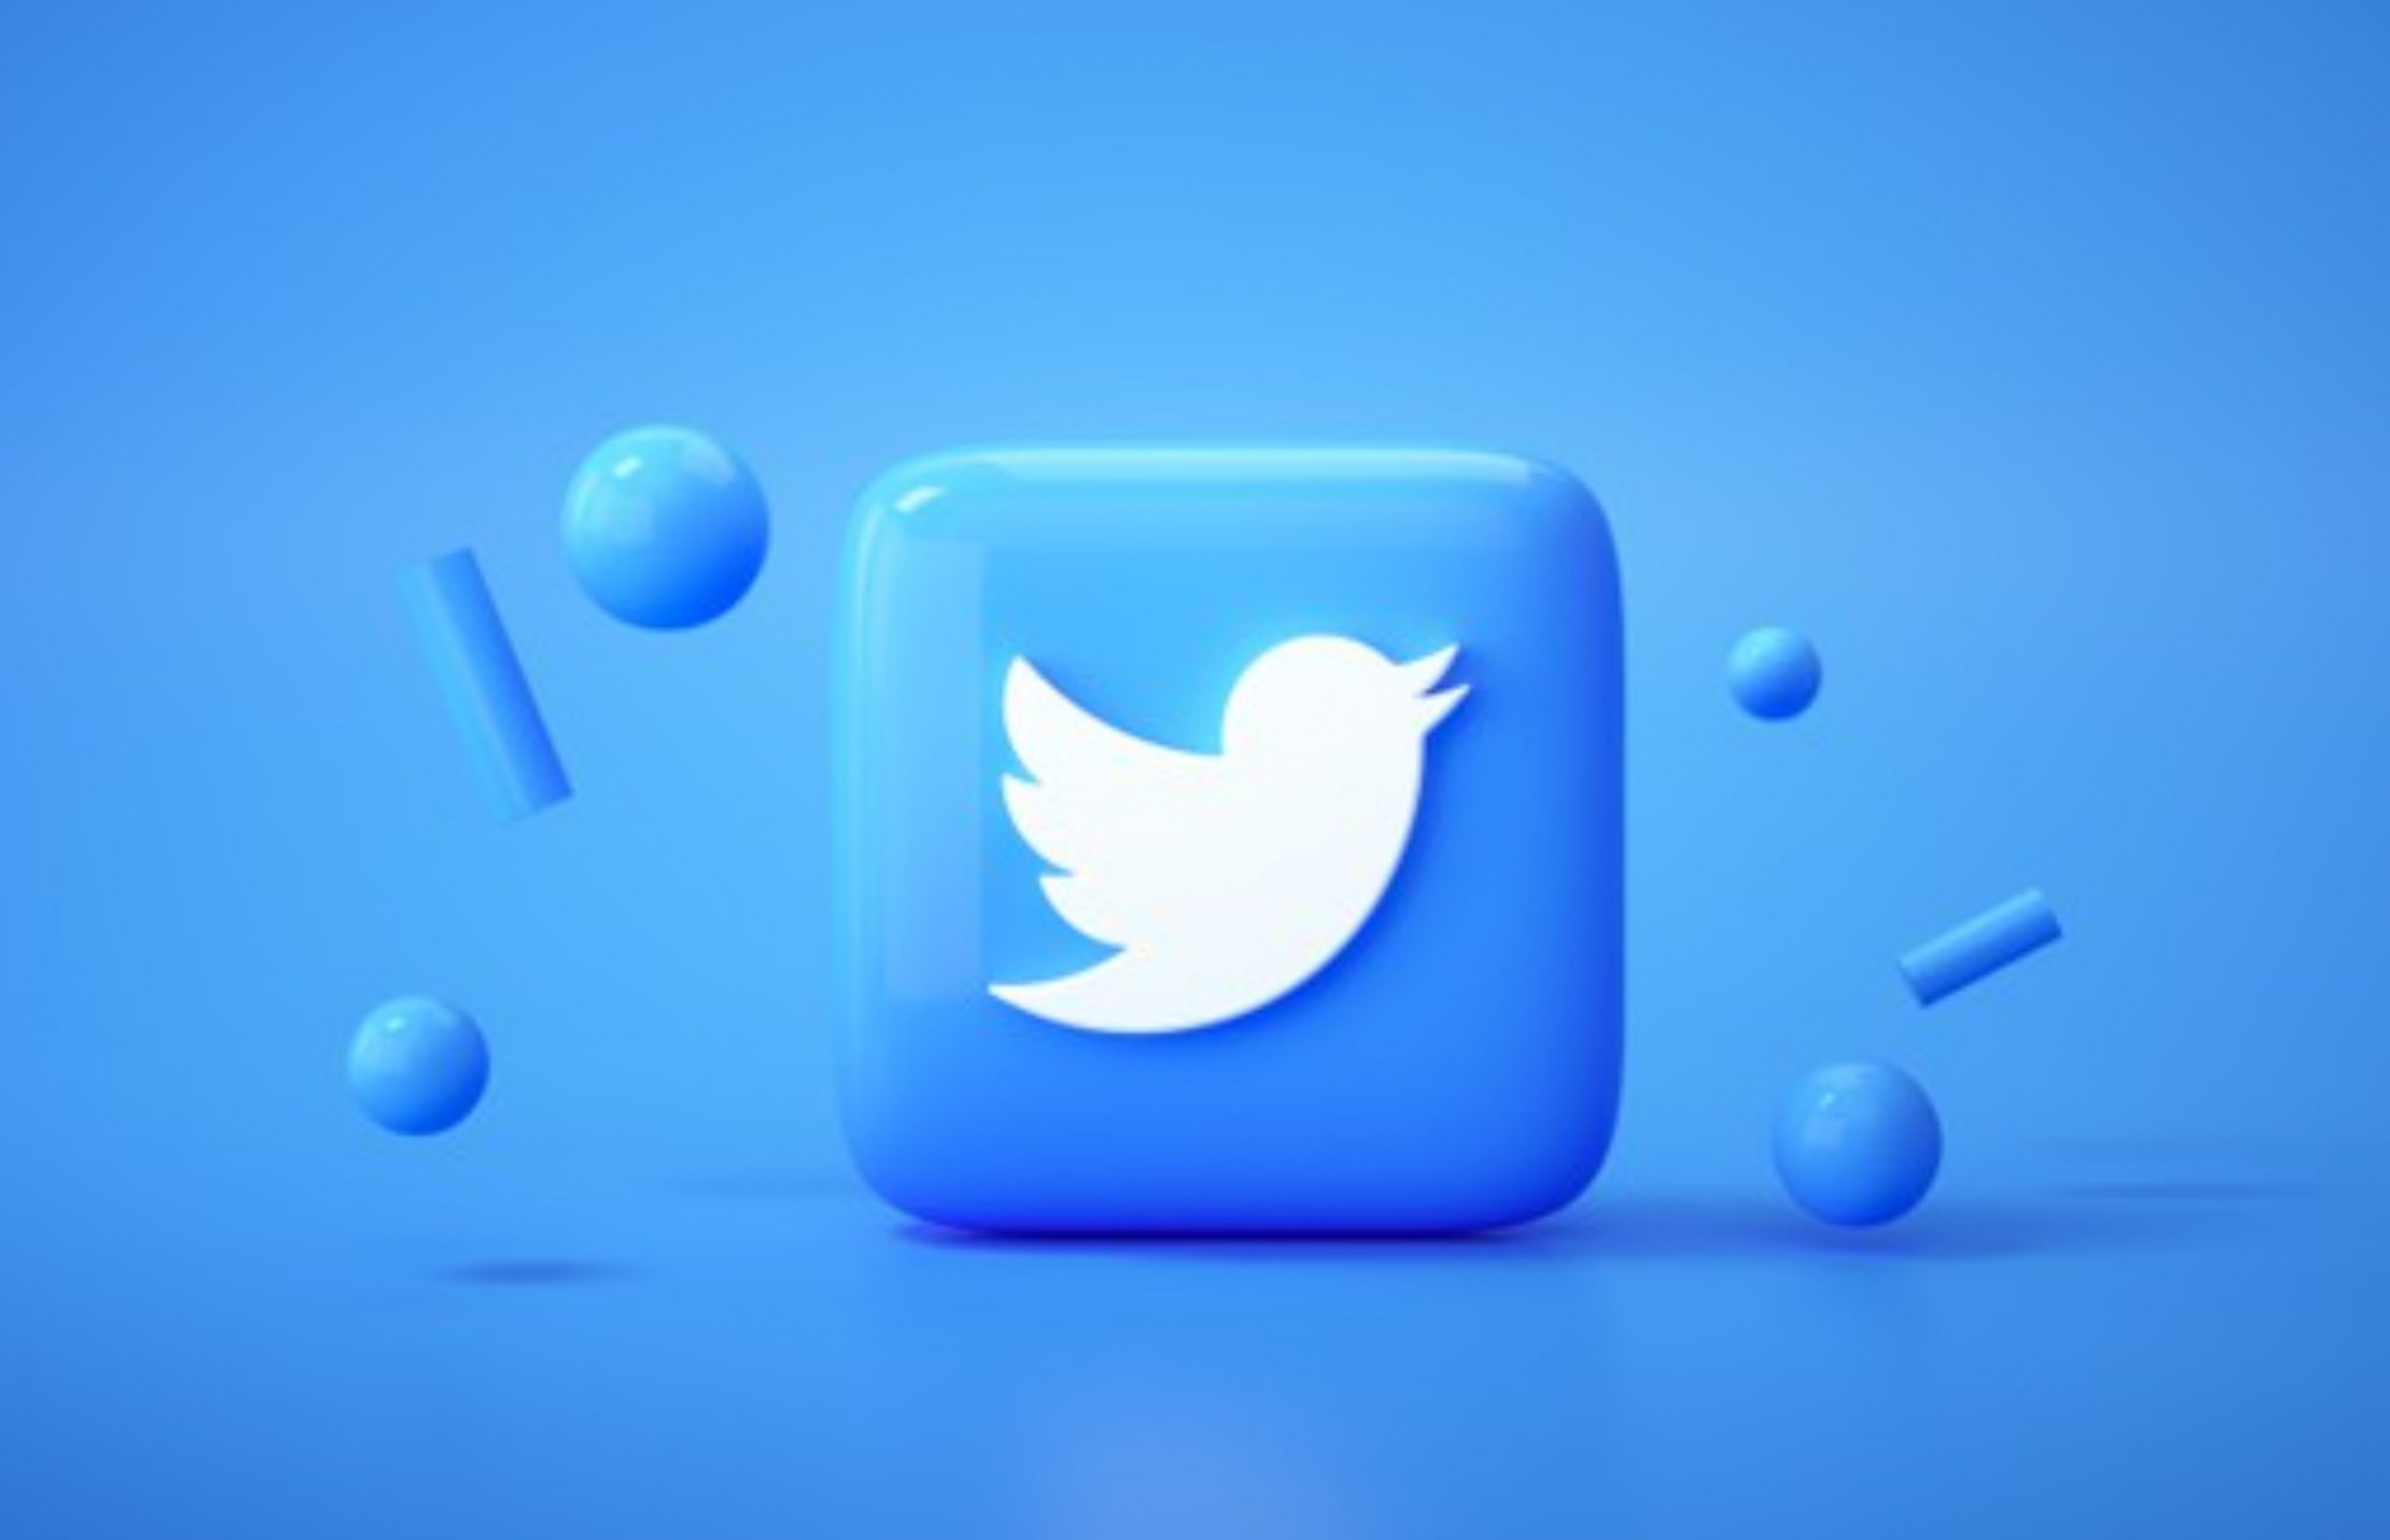 Twitter's establishing it's presence in Africa